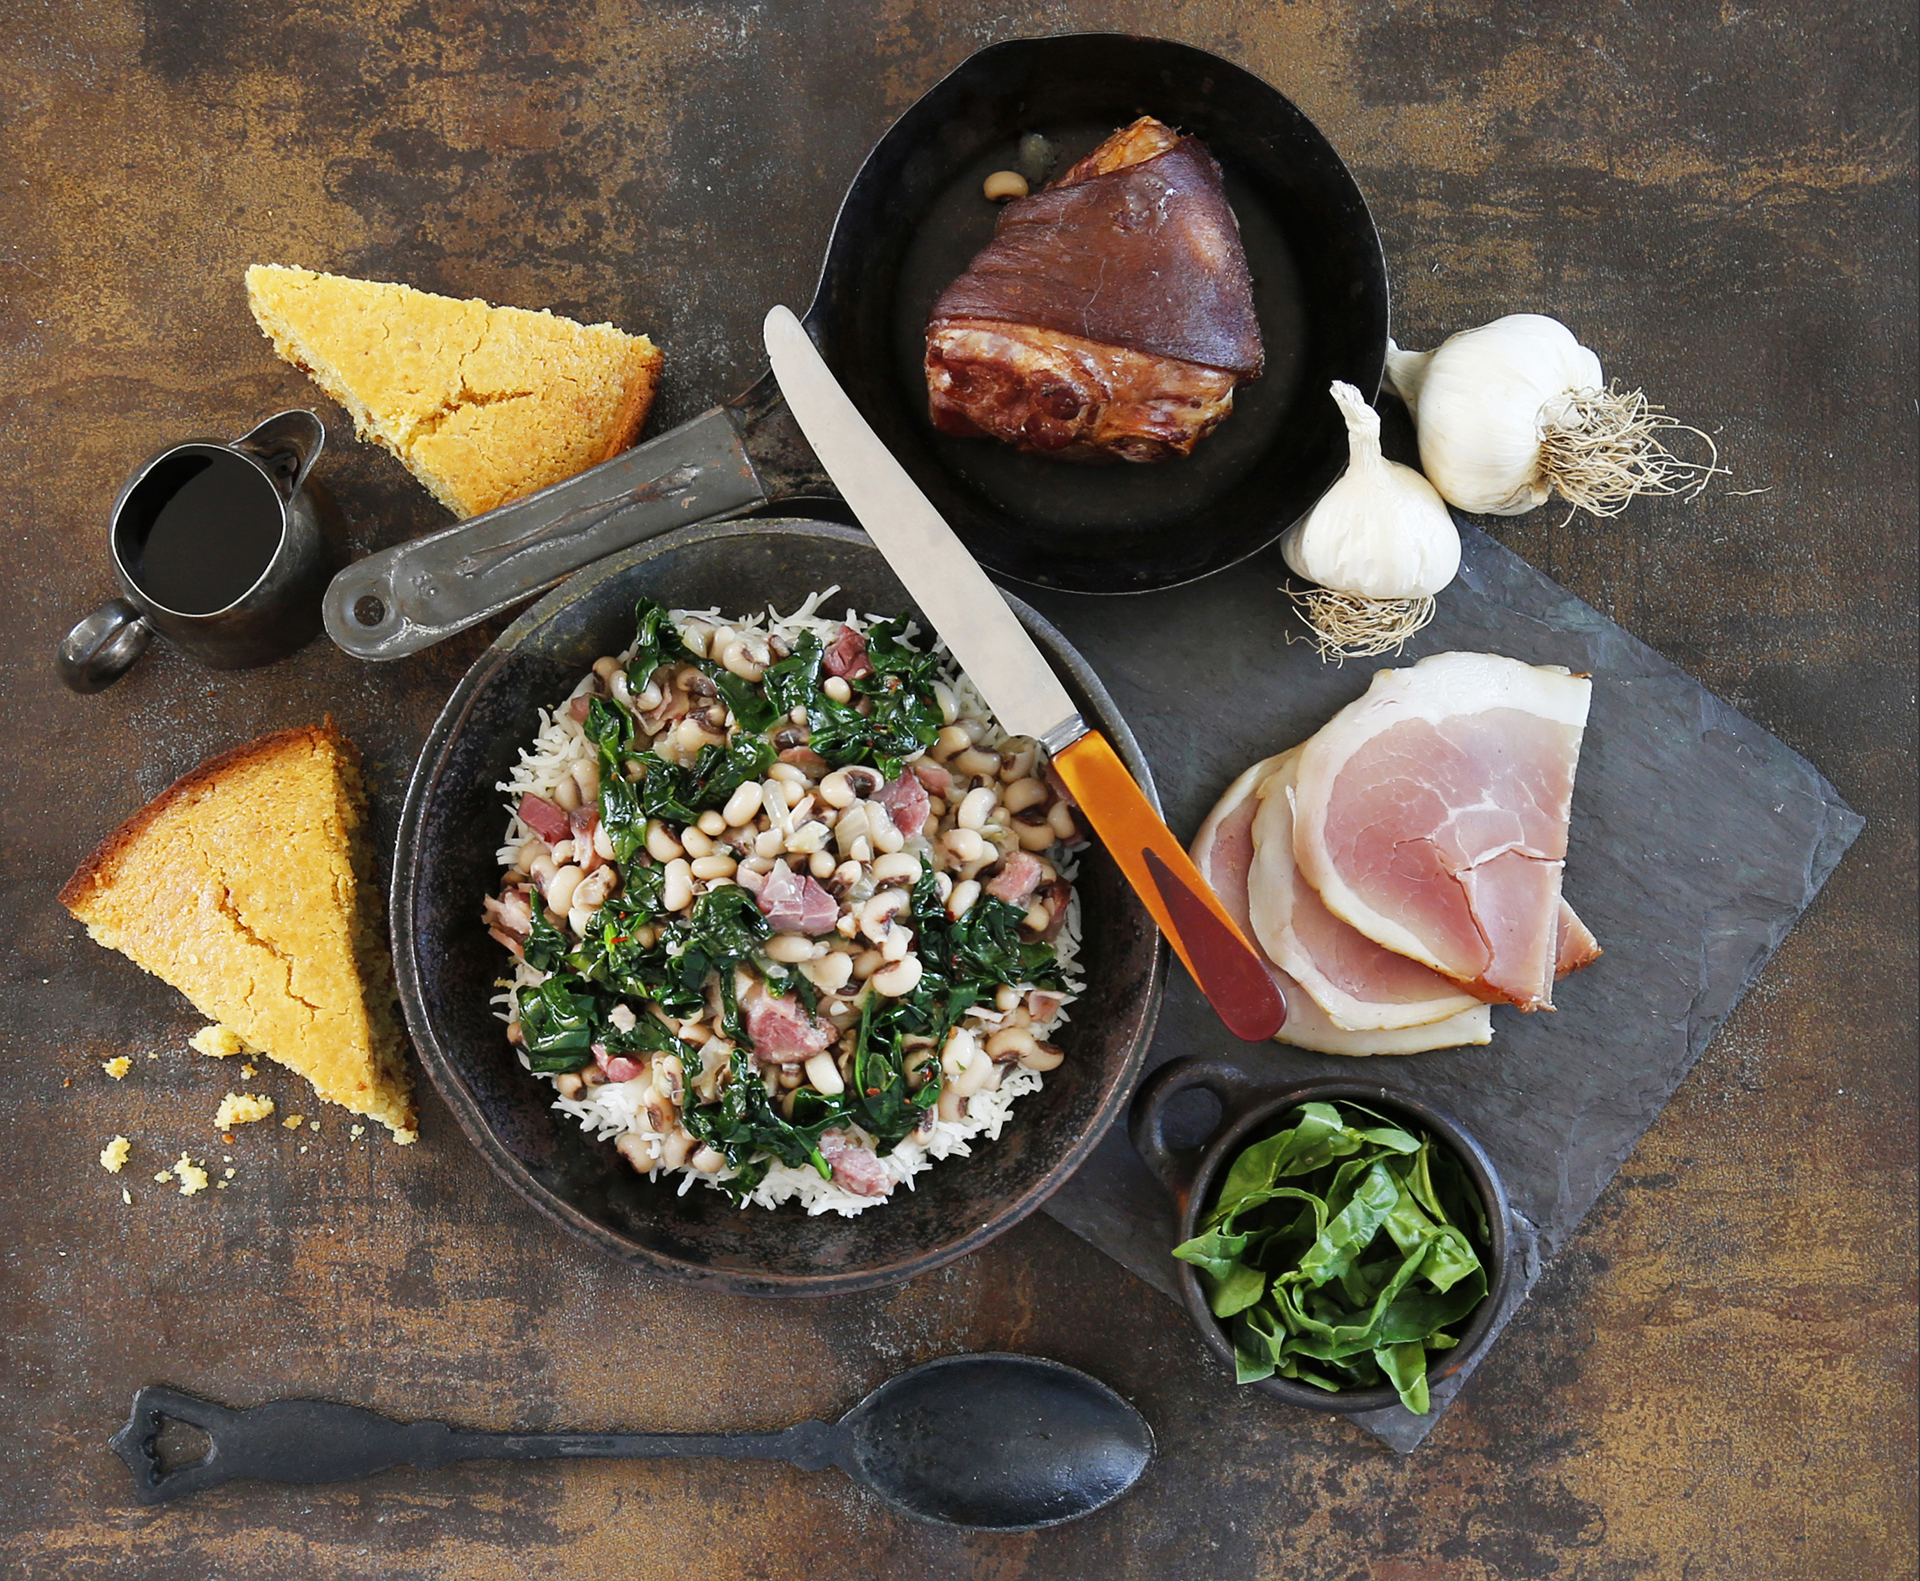 Hoppin' John (Black-eyed Peas with Rice, Greens & Cornbread)